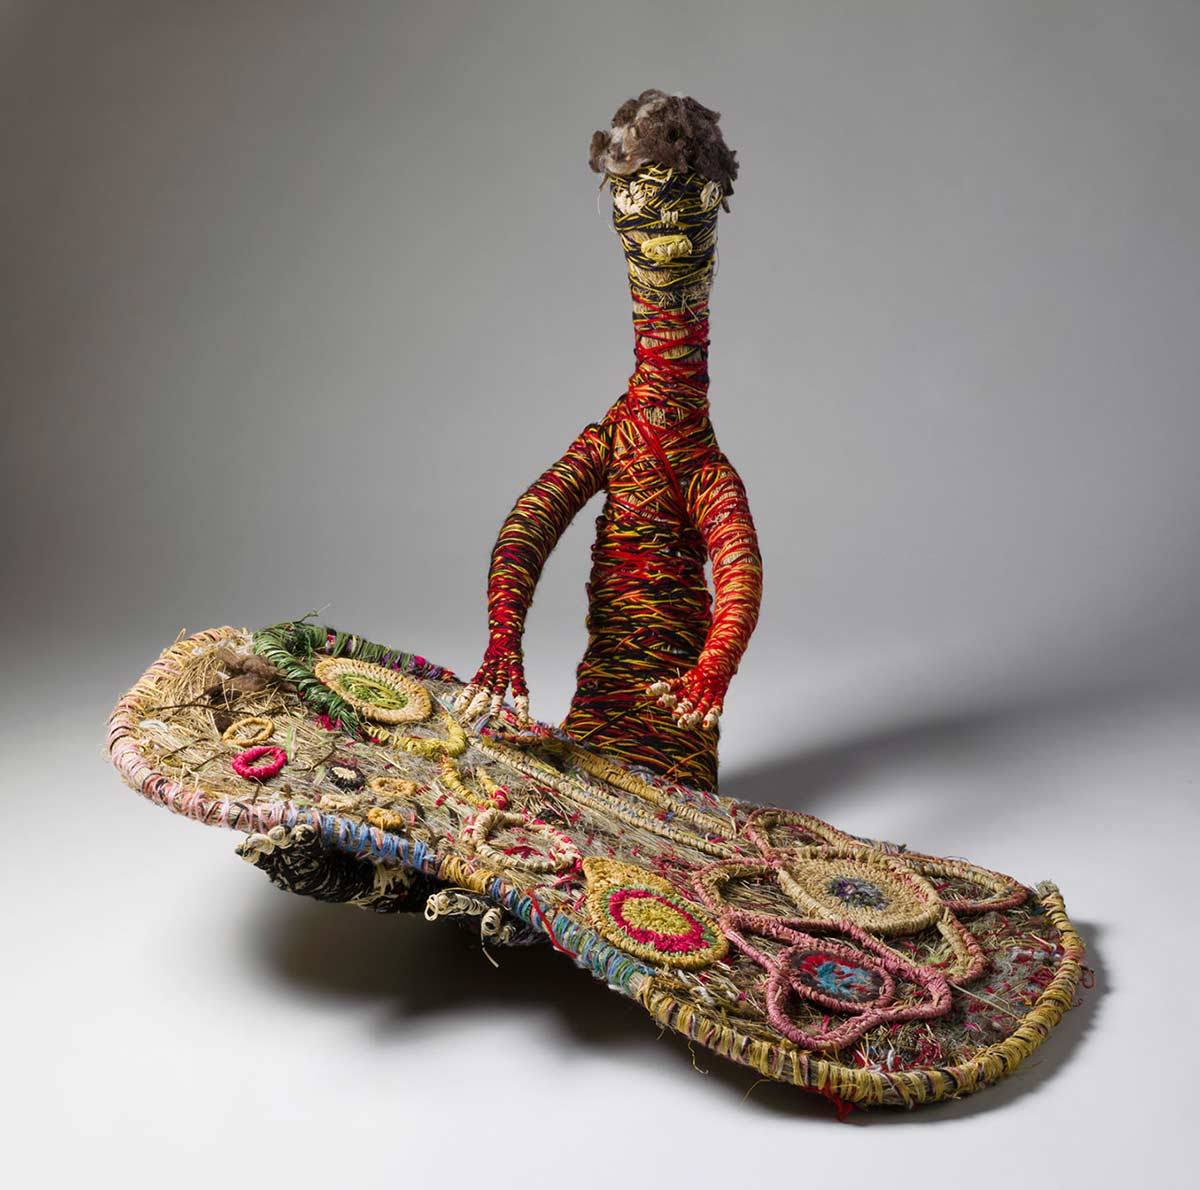 A sculpture depicting a person working on a painting. The sculpture is made of woven grass, plant material dyed in different colours and strands of wool. - click to view larger image